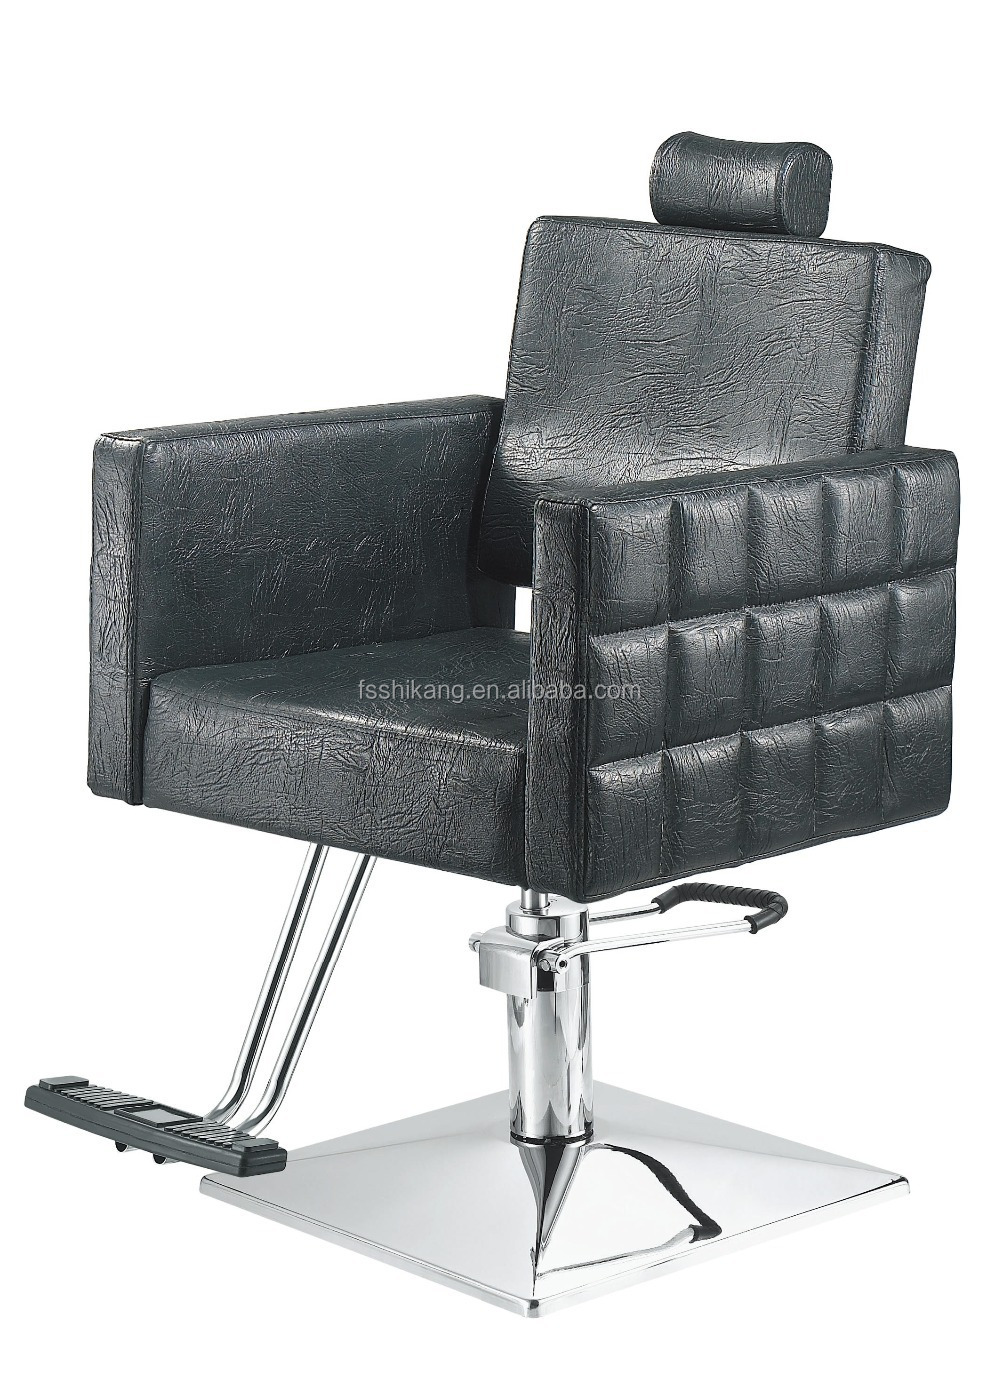 Beauty portable salon chair and hair chairs for sale buy for Salon sofa for sale